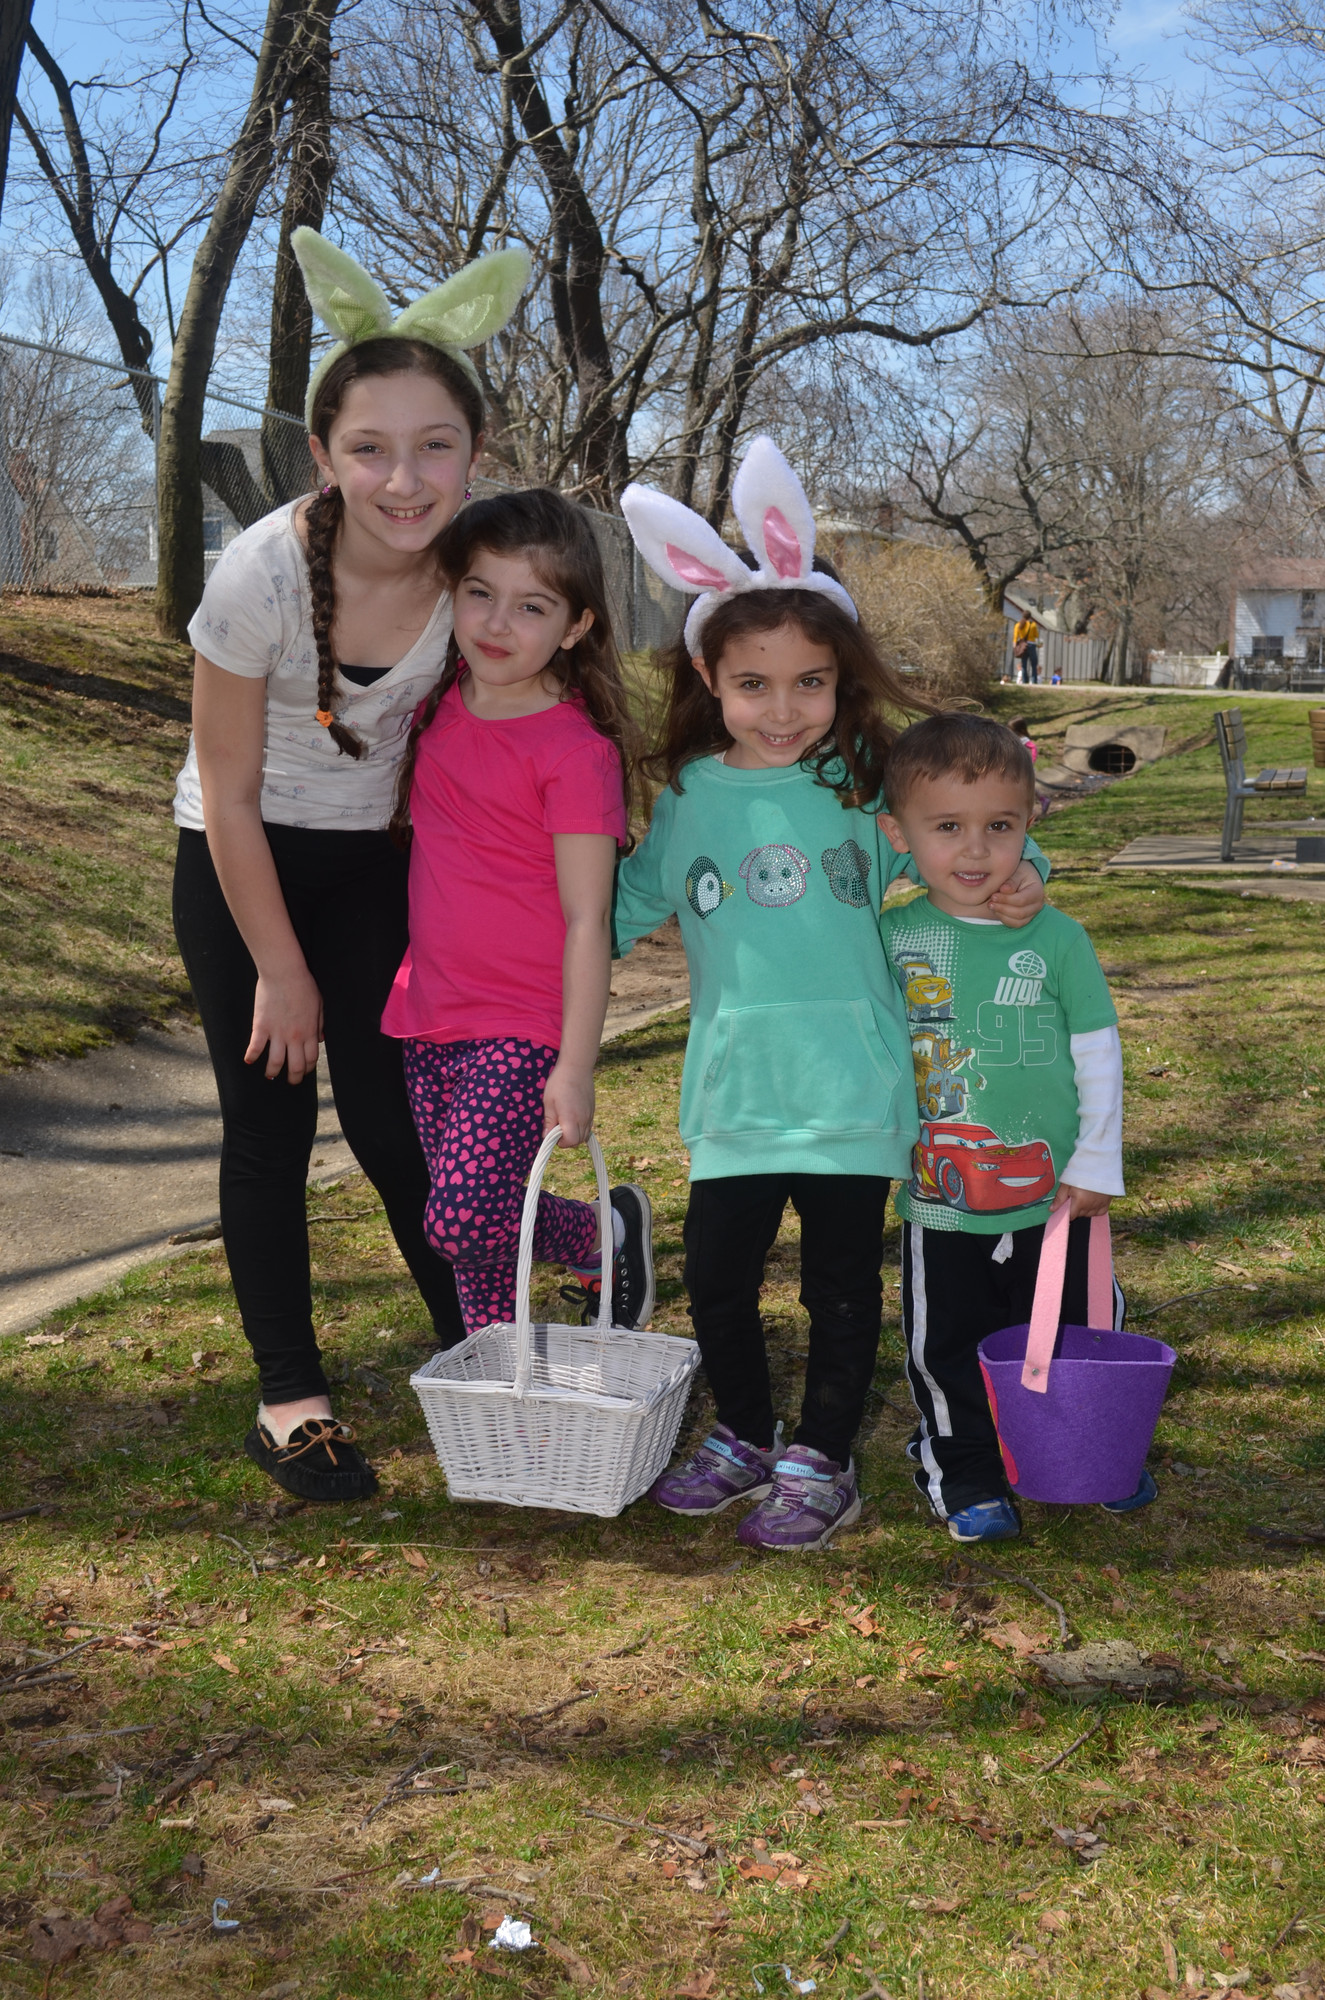 Emily and Jillian Nader, ages 10 and 6, and Ruby and Marcus Ciliabrasi, 6 and 3, were among the dozens of children who took part in the North and Central Merrick Civic Association's 2014 Spring Eggstravaganza last Saturday at Fraser Park in North Merrick.